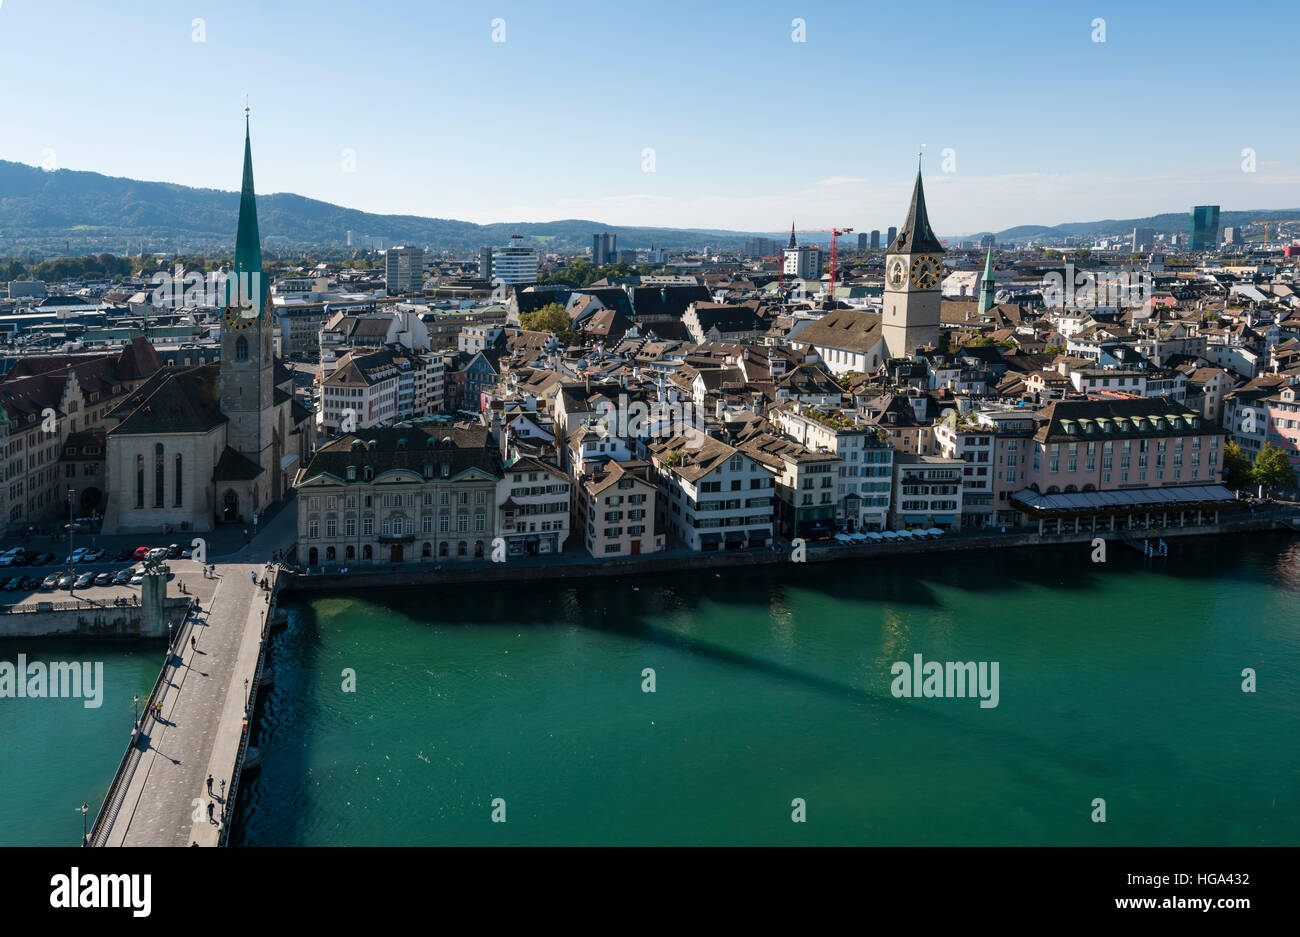 Zurich's old town with Fraumunster cathedral (left) and church St. Peter (right) at the Limmat river, seen from - Stock Image